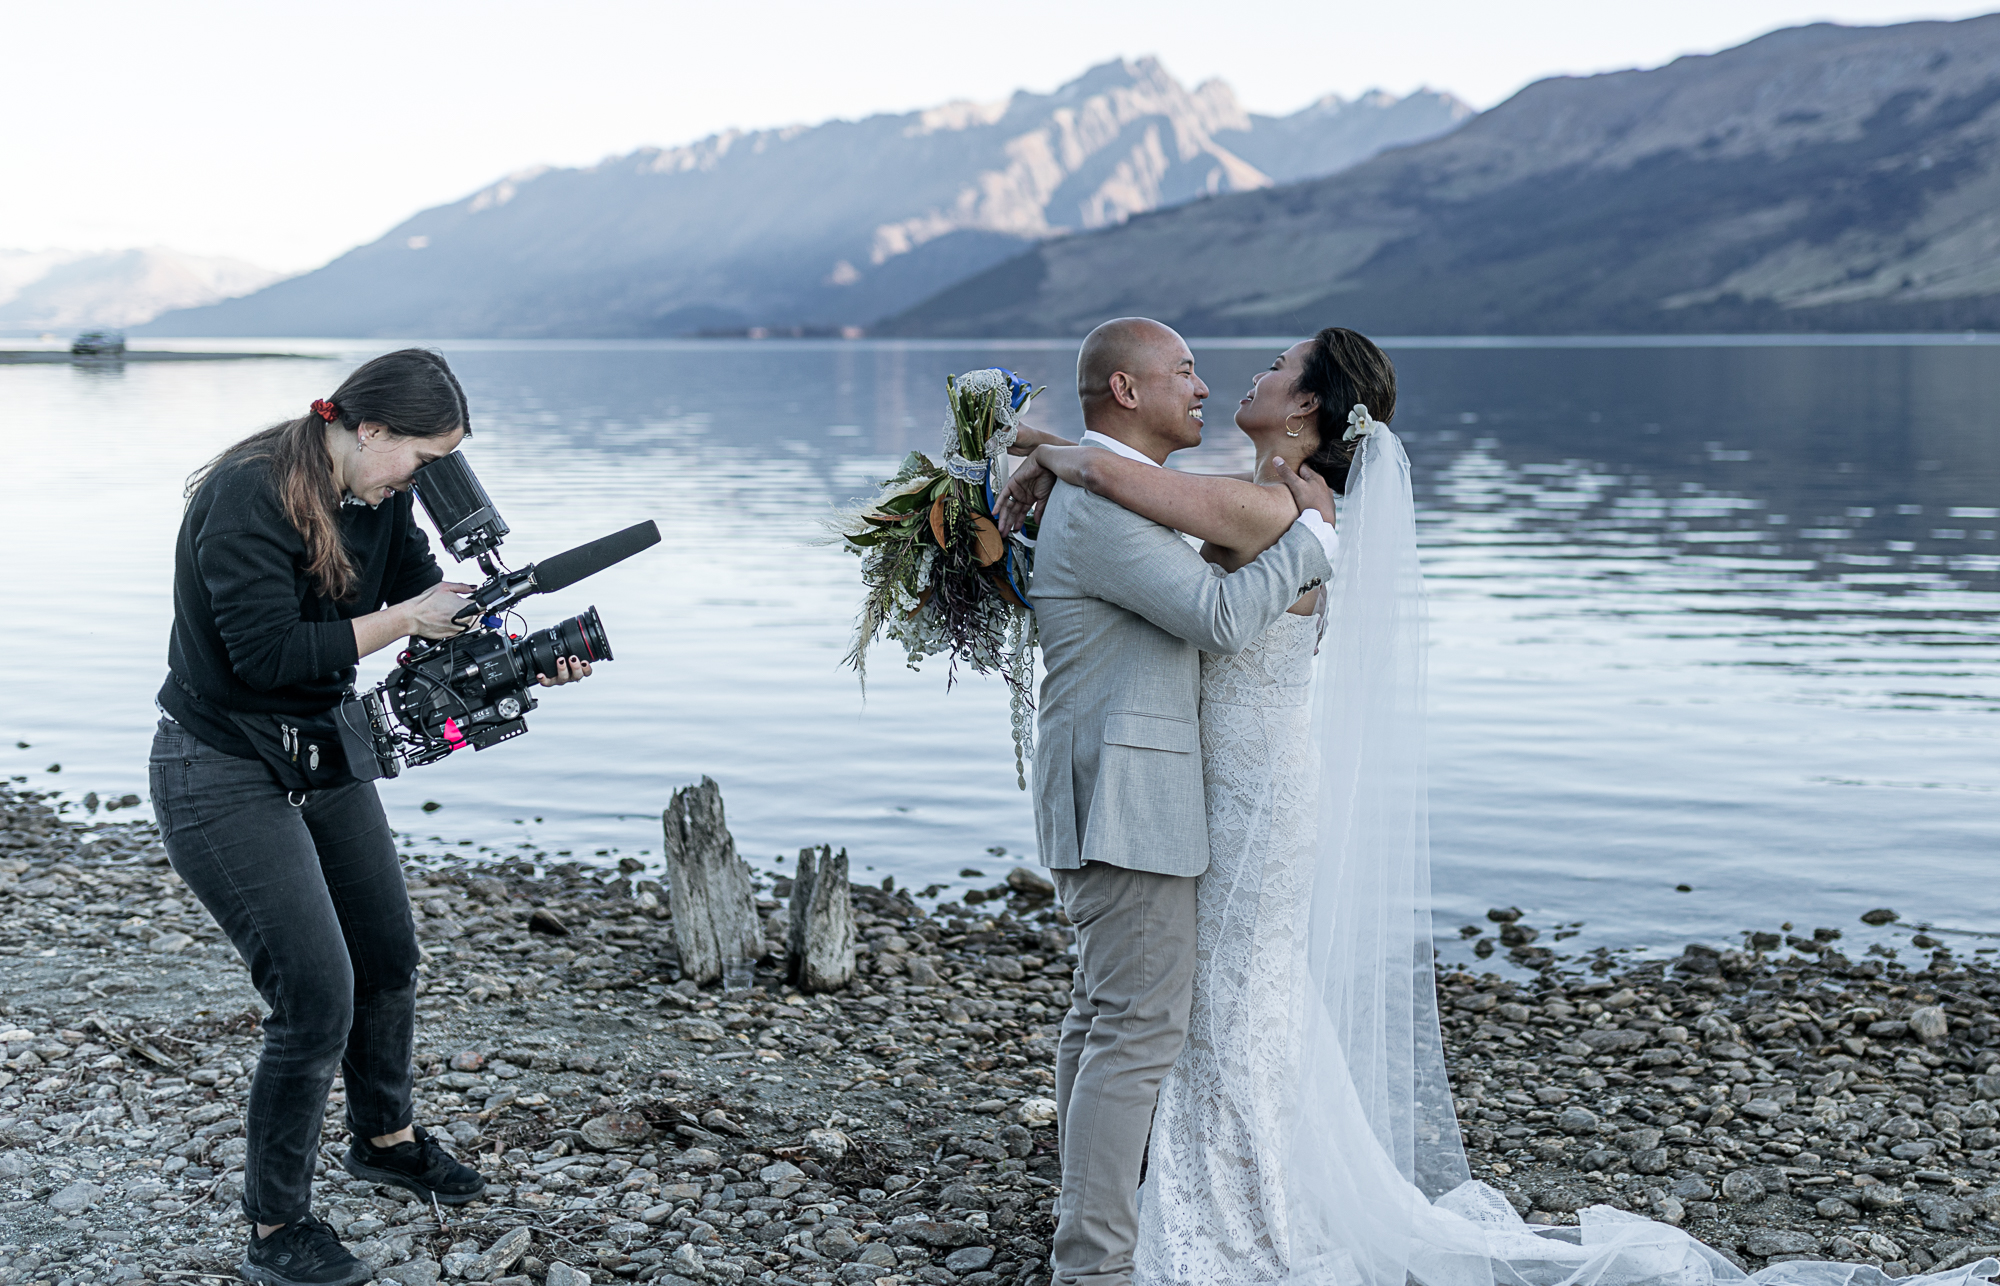 Wildly Romantic Videographer - Susan Miller Photogrpahy